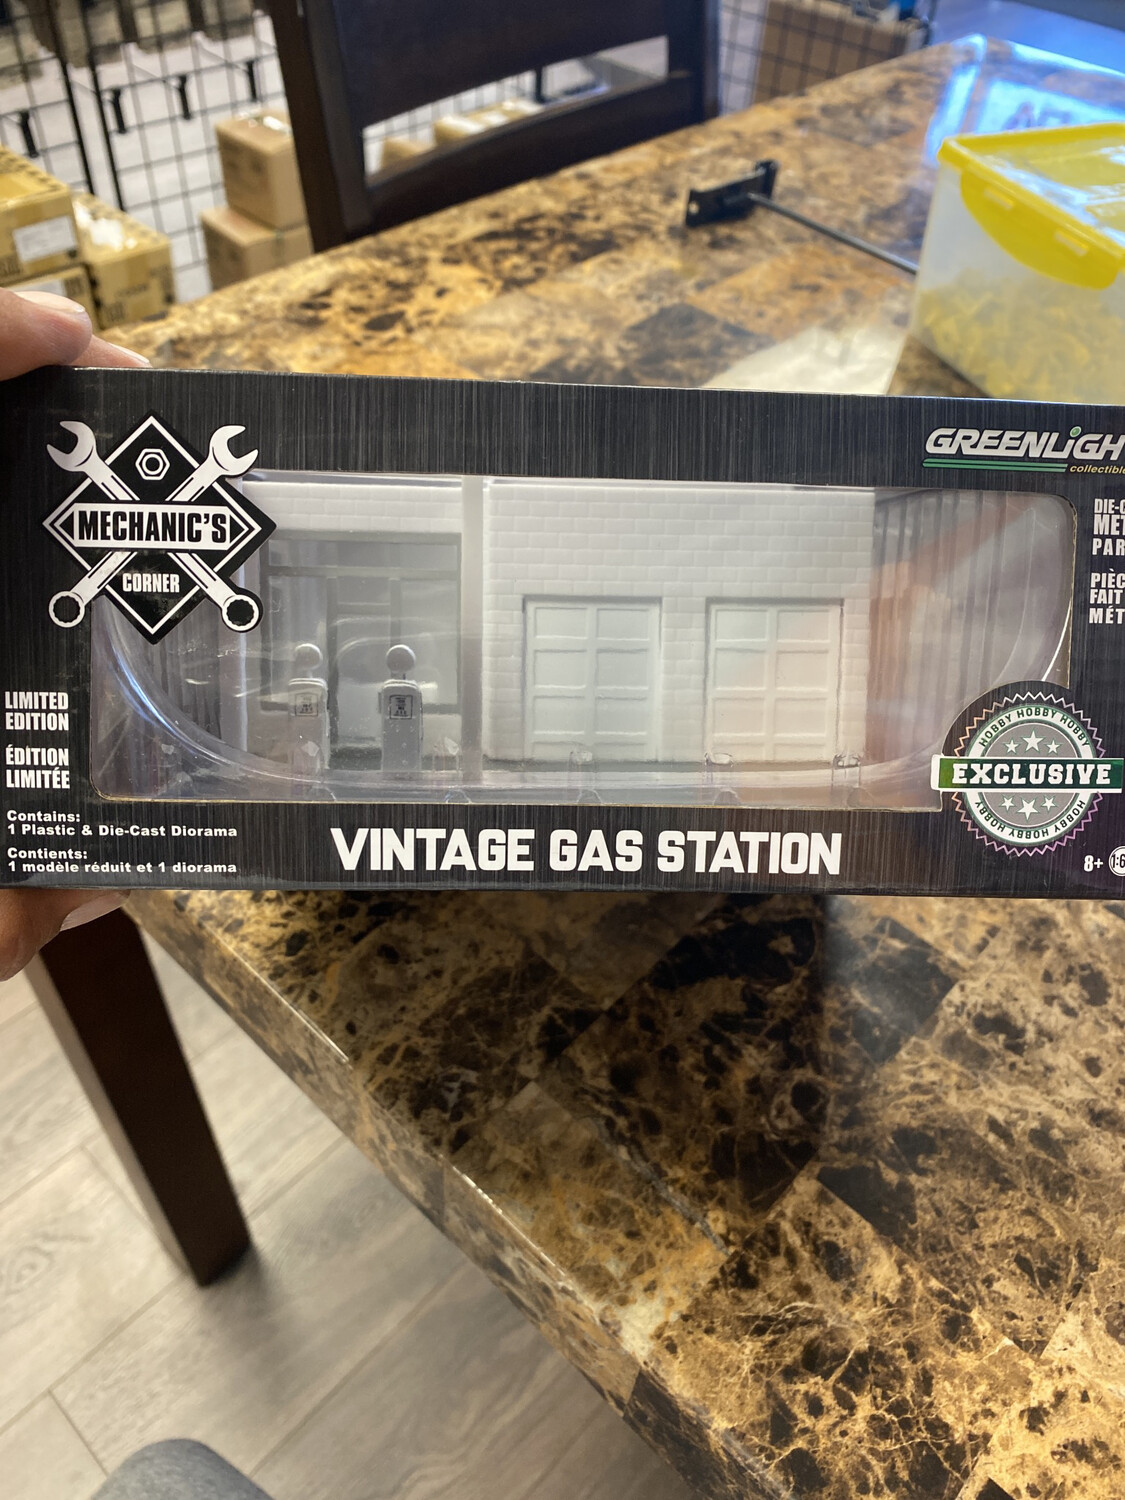 Greenlight-1/64 Scale Vintage Gas Station